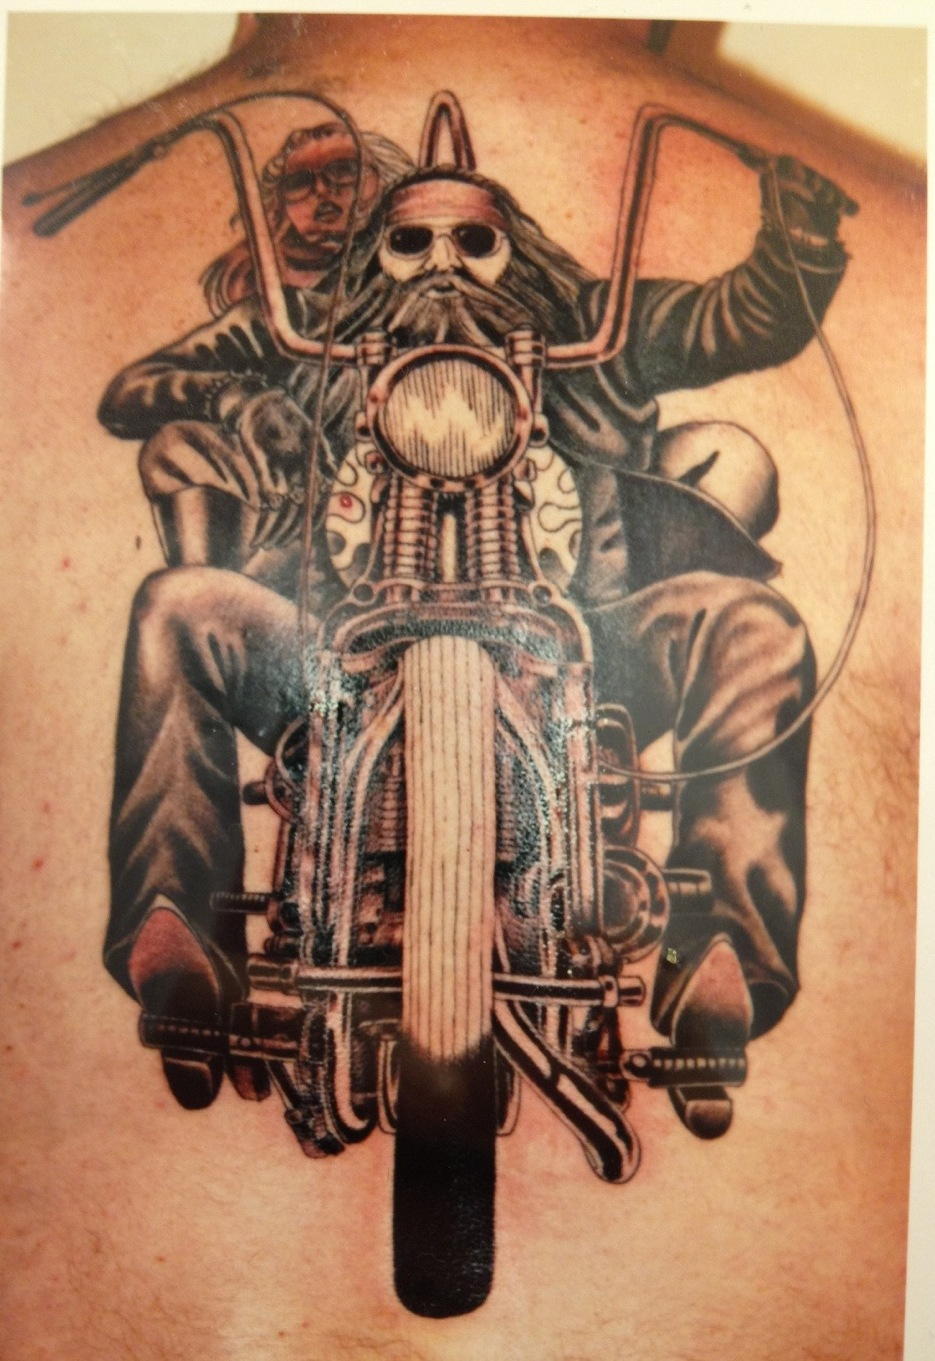 Biker Motorcycle Tattoos Ideas And Designs